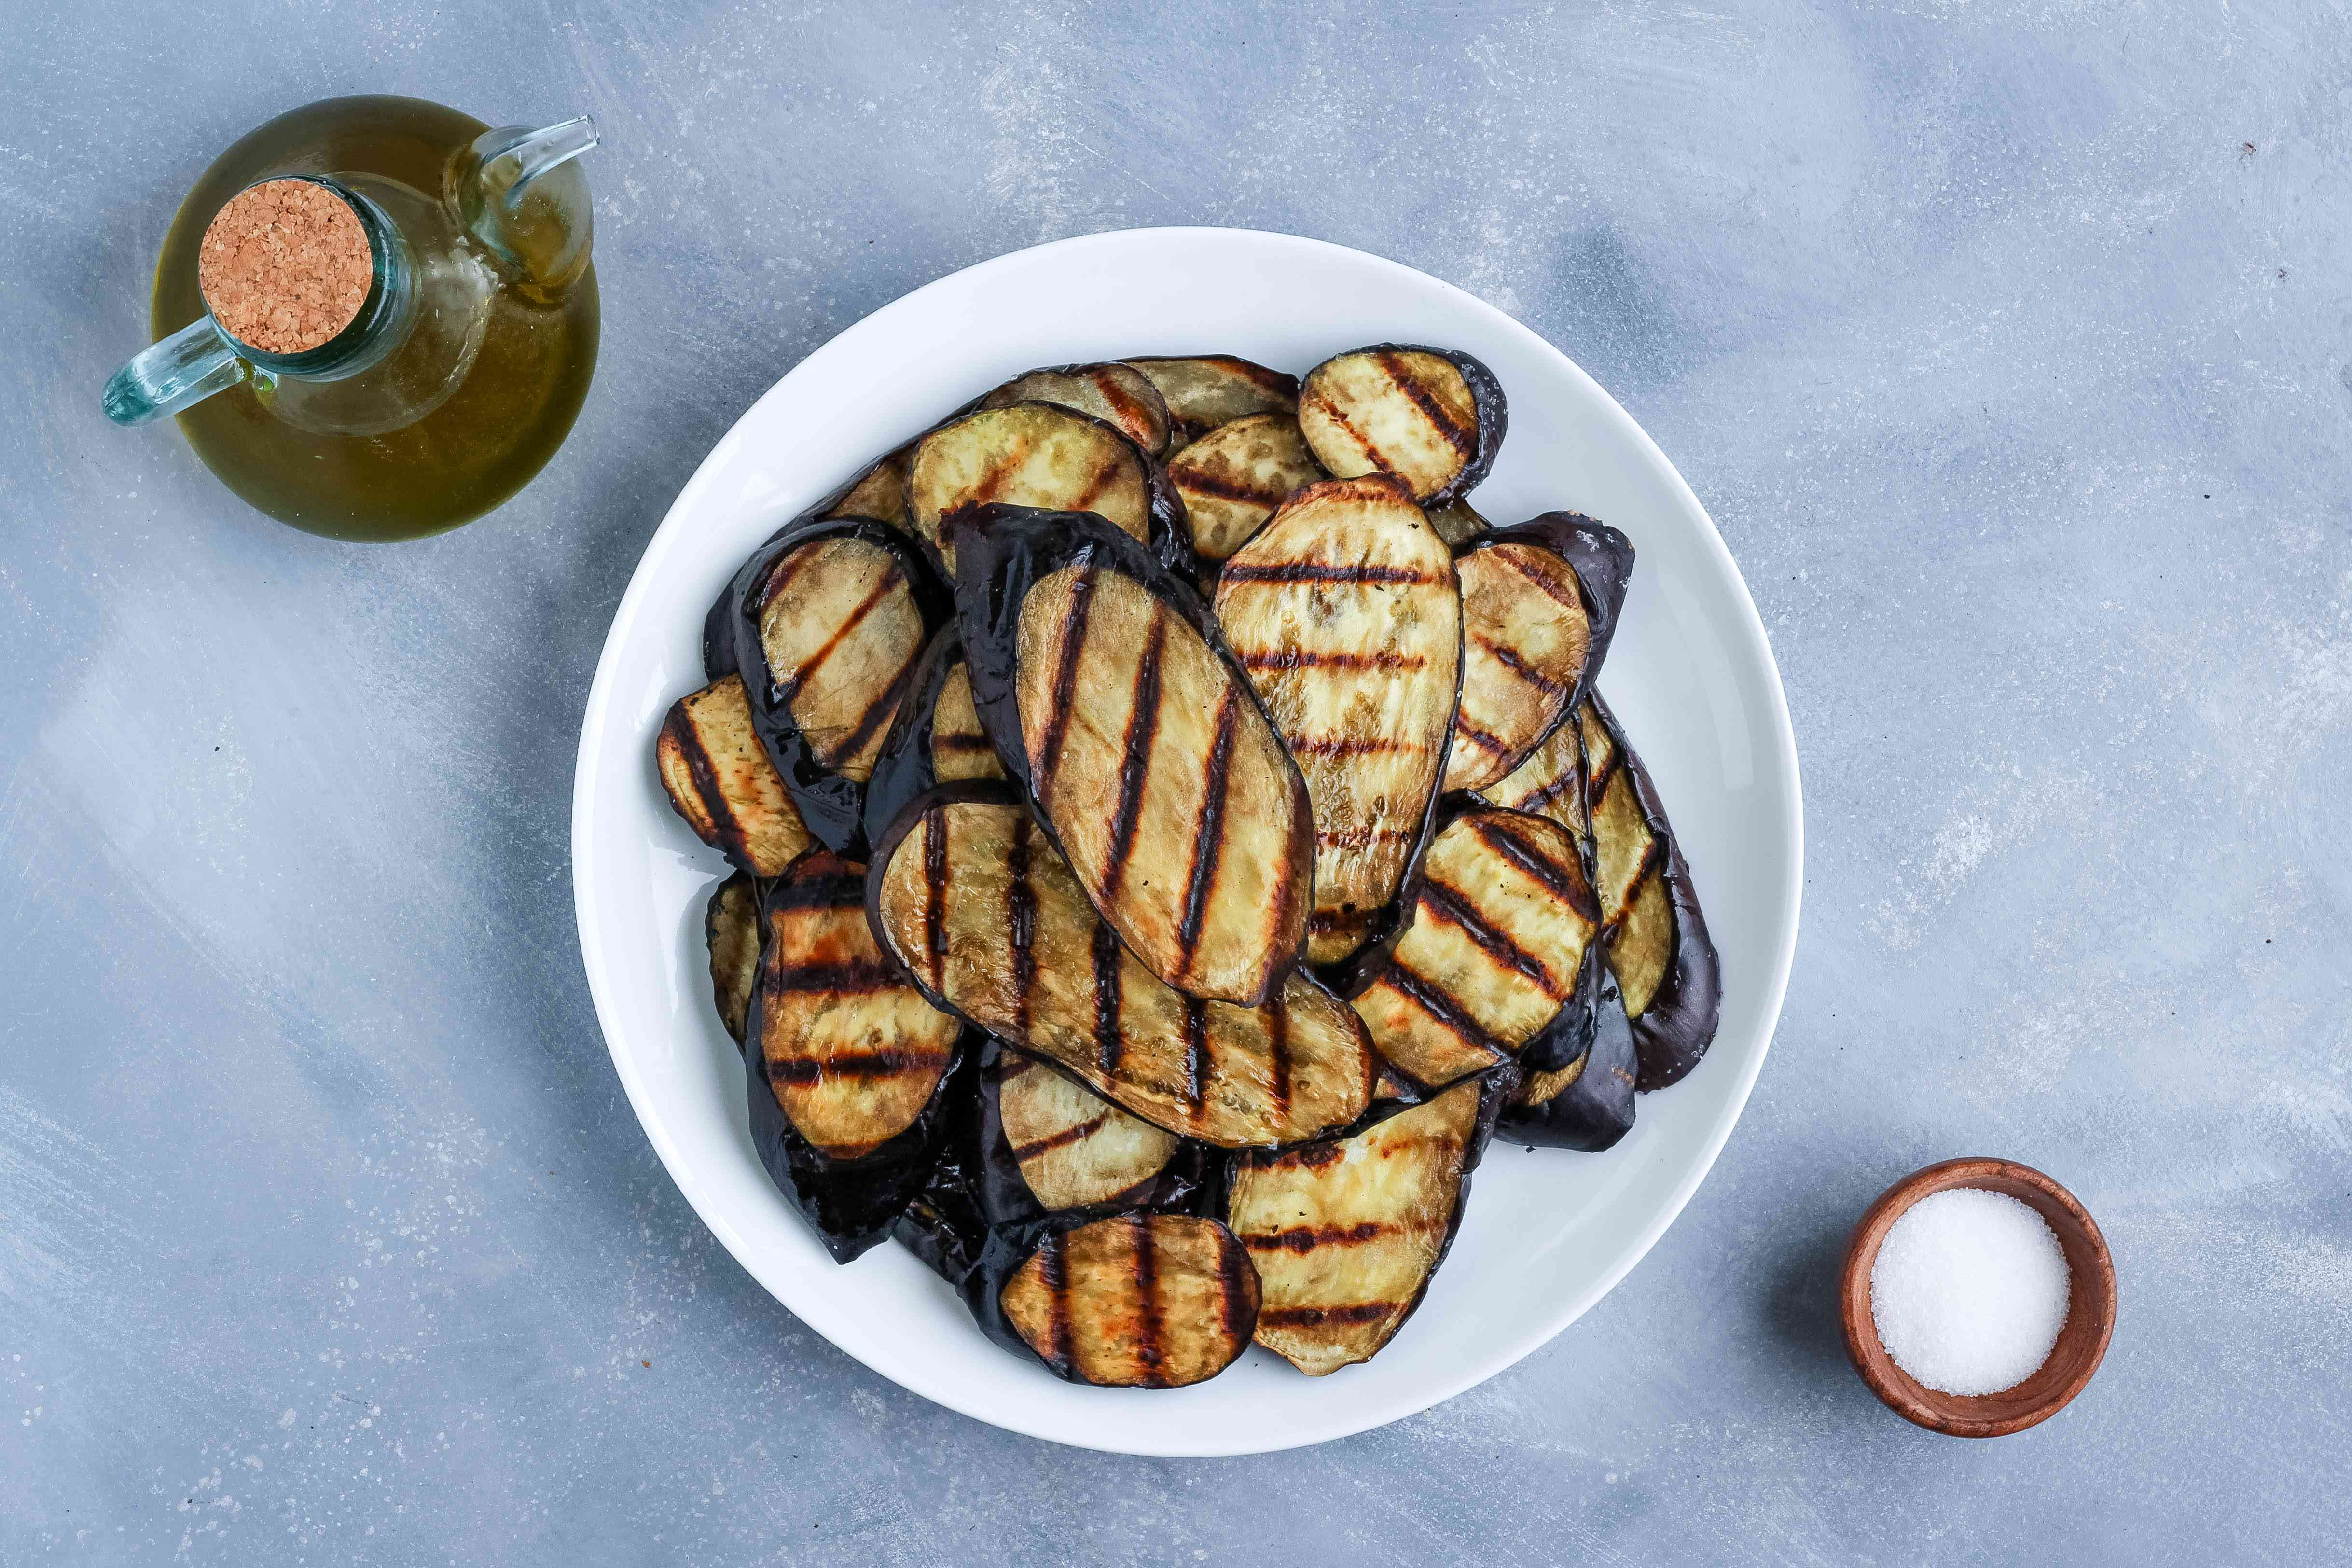 A plate of grilled eggplant with oil and salt